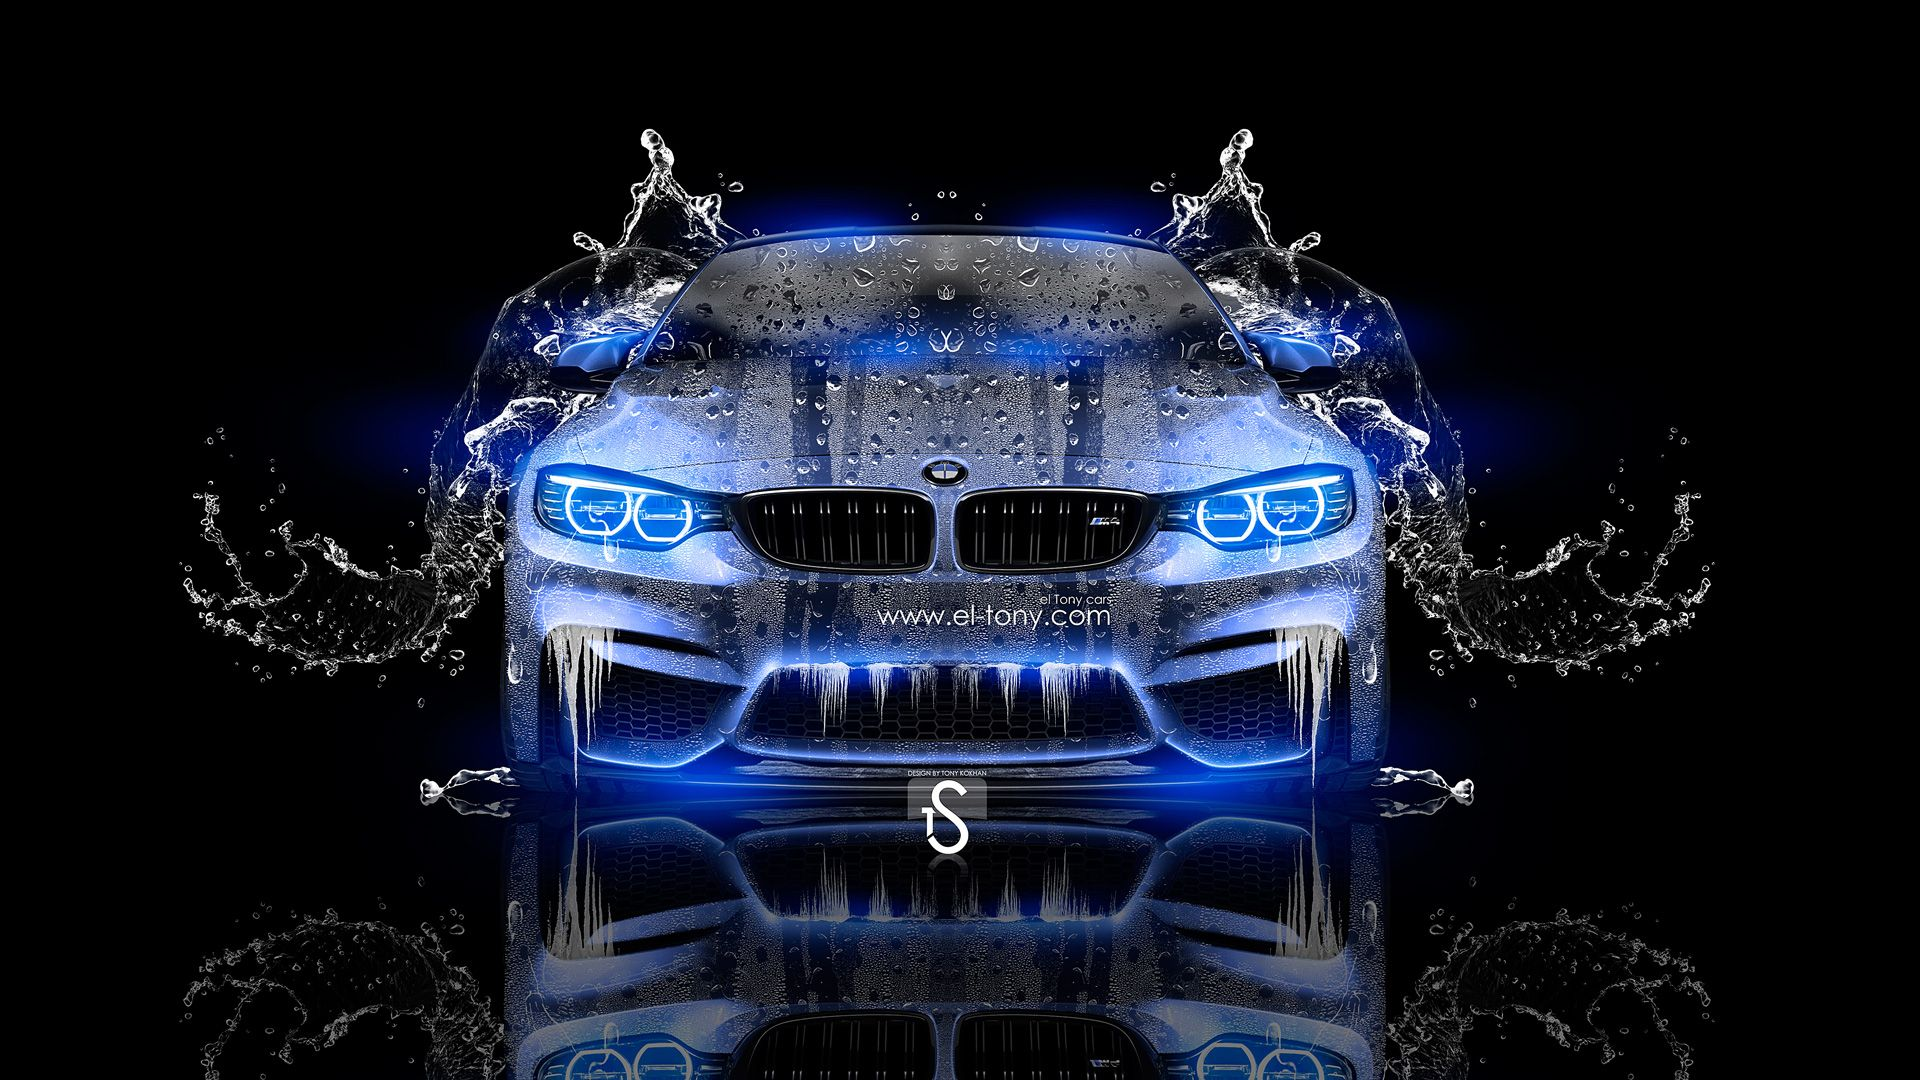 Cool Bmw M4 Abstract Art Hd Wallpaper With Images Neon